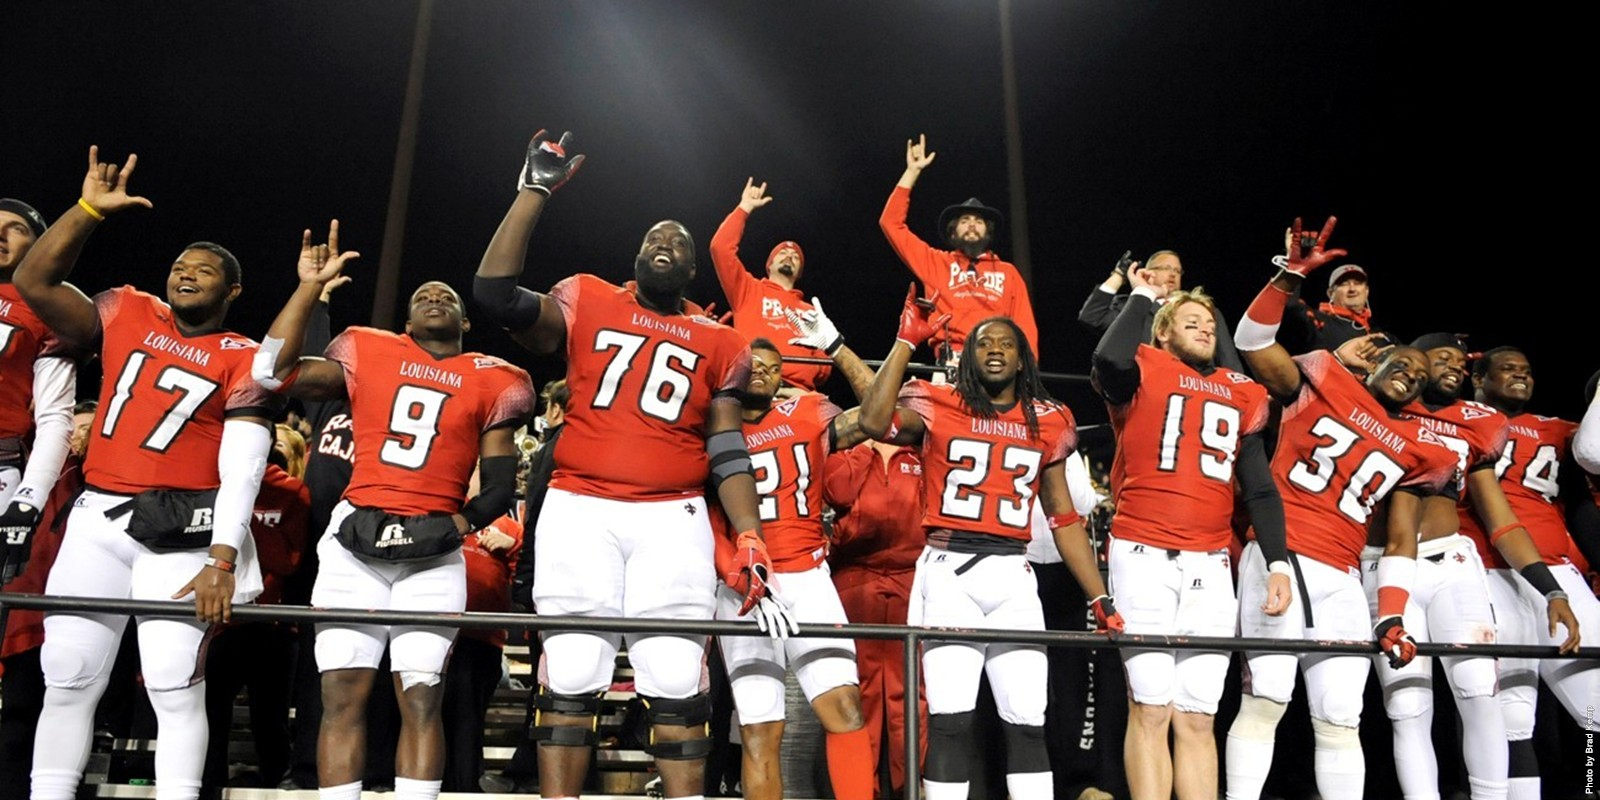 R&L Carriers New Orleans Bowl-bound UL-Lafayette hopes to avoid a letdown in their regular season finale'.